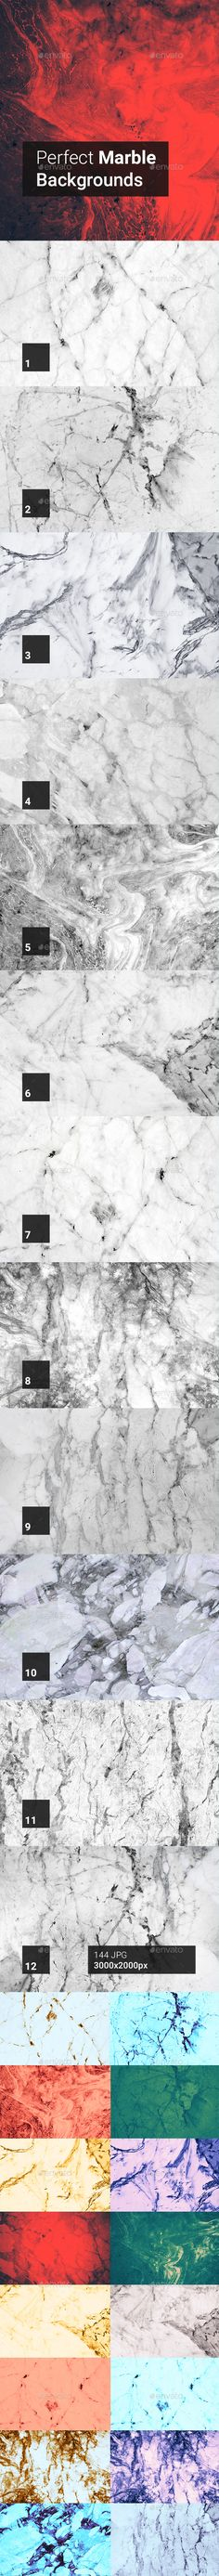 144 Perfect Marble Backgrounds by kauster- 144 Perfect Marble Backgrounds This pack includes 144 Perfect Marble Backgrounds. Suitable for printing, web design, banners, post